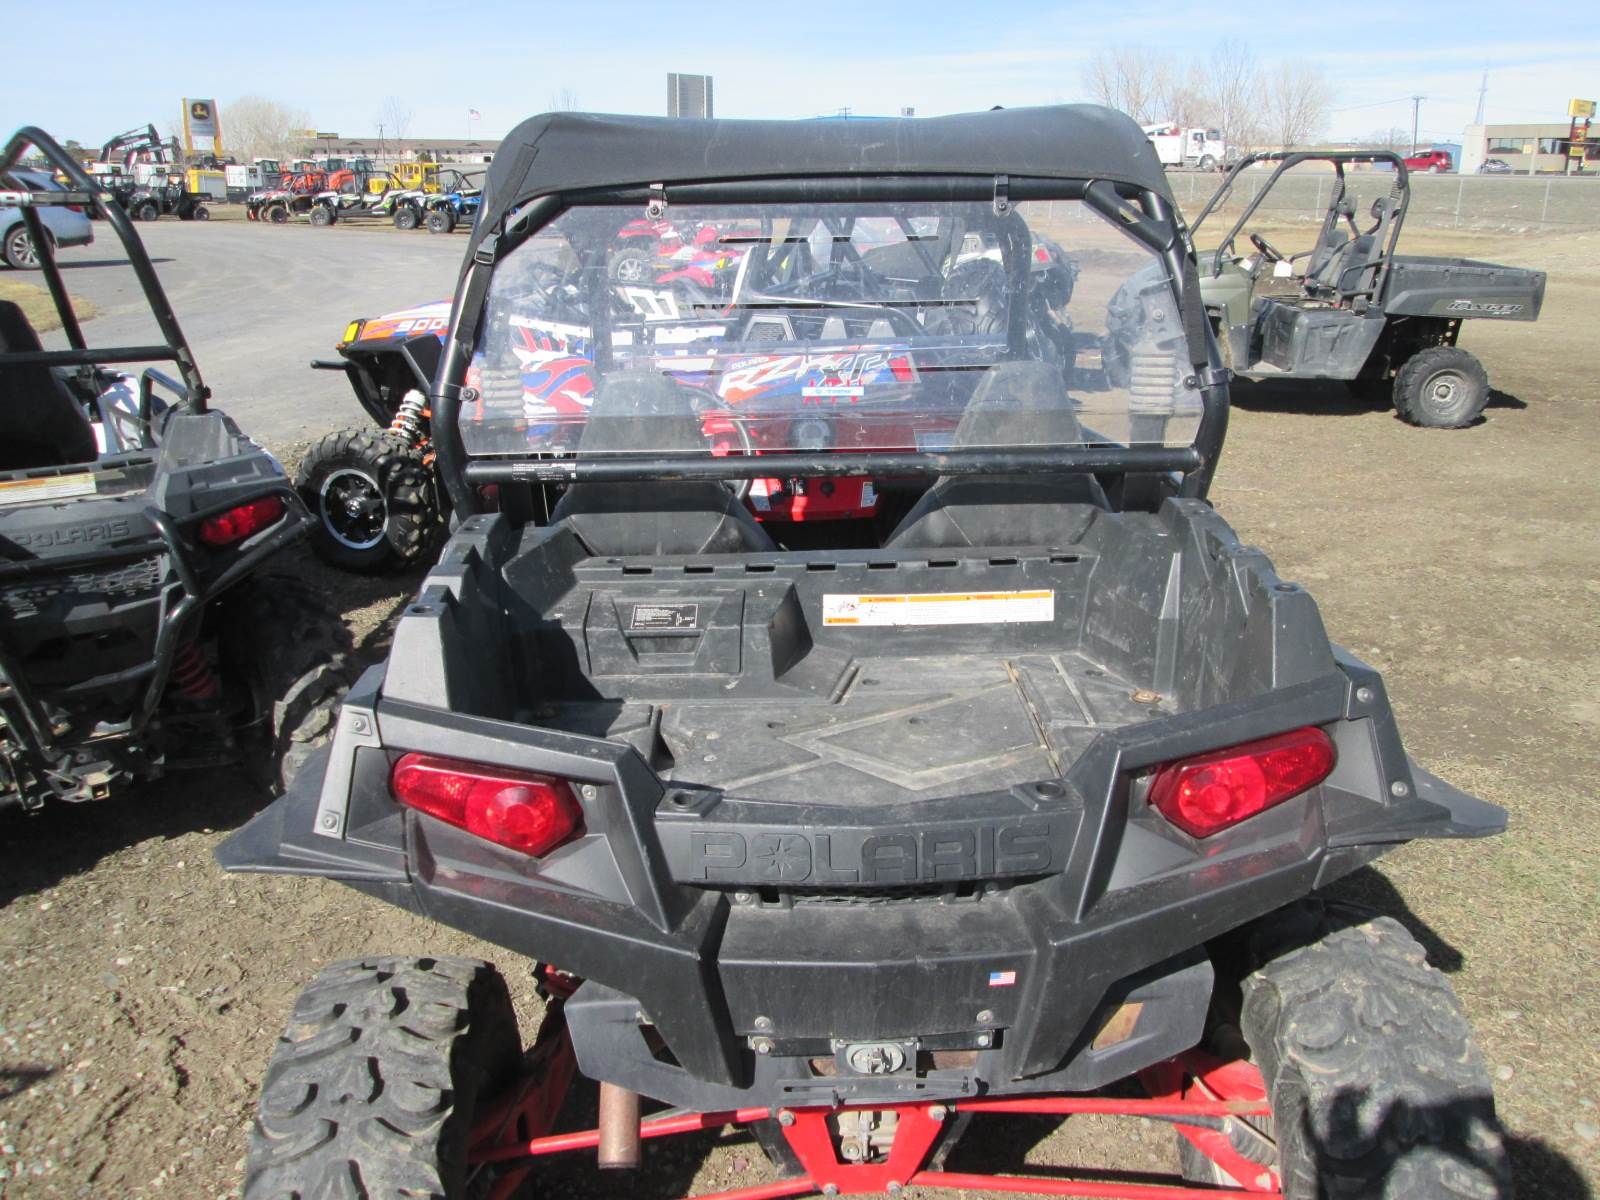 2011 Polaris RZR 900 XP in Billings, Montana